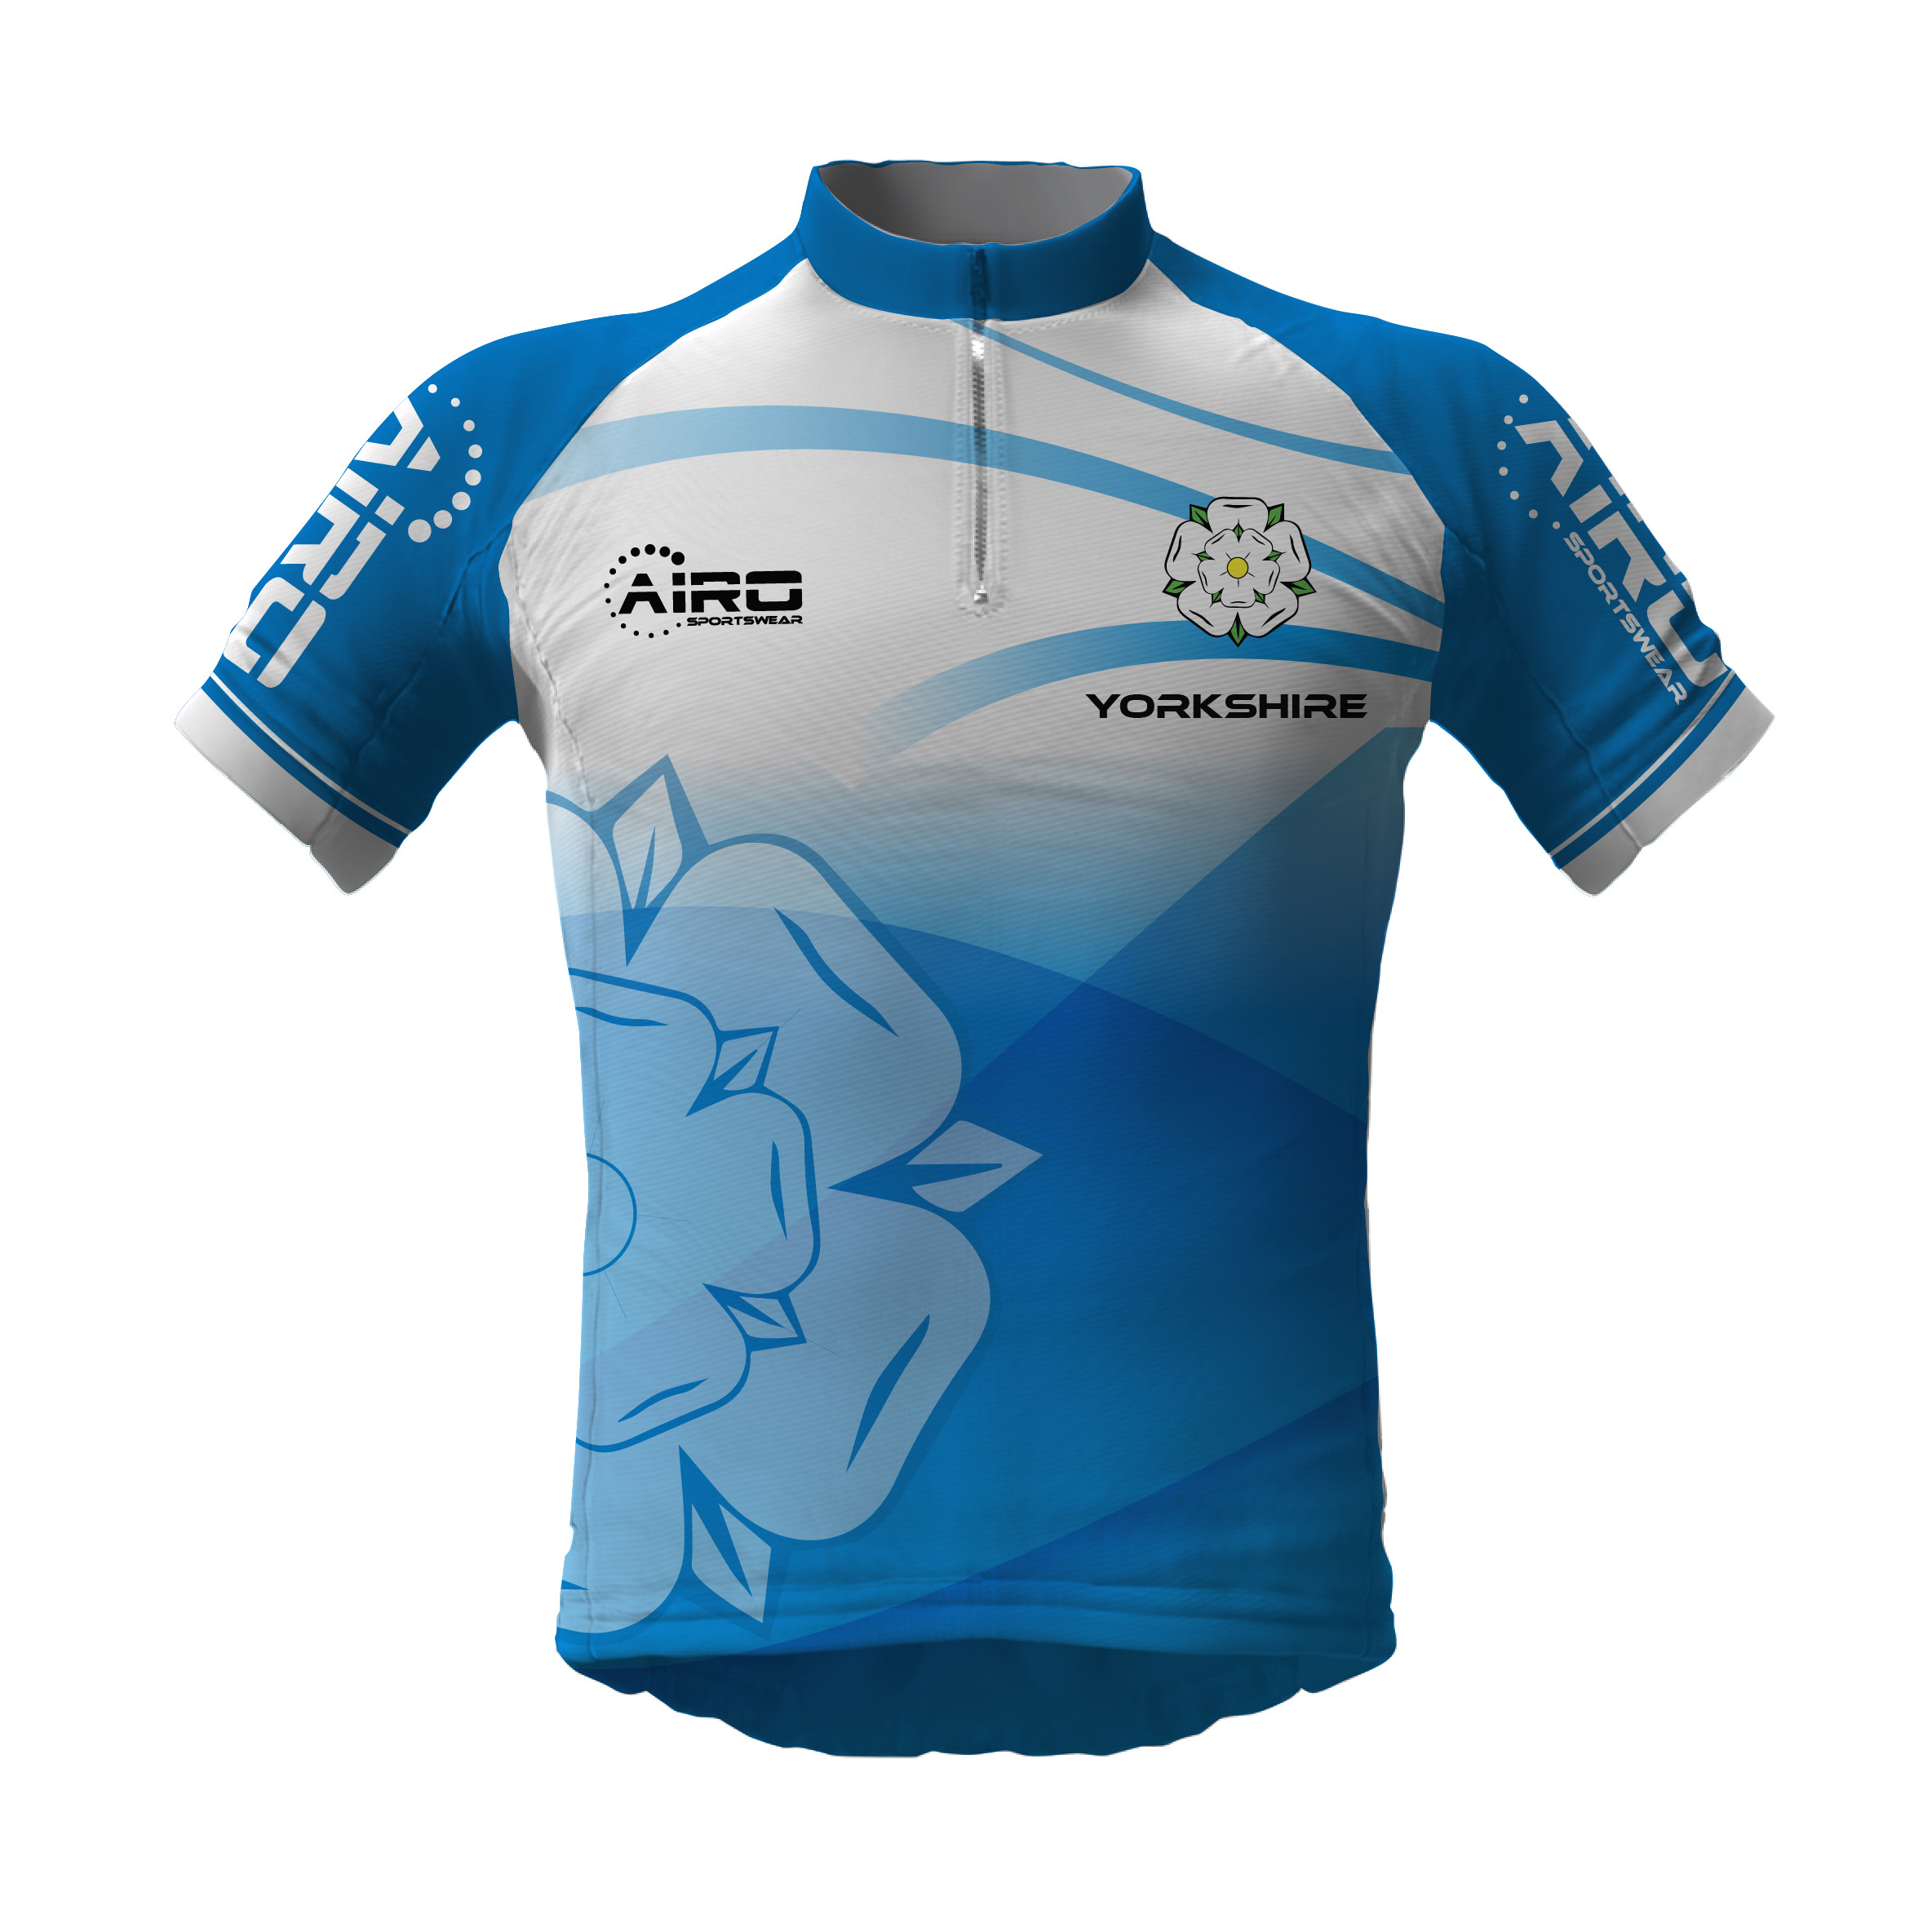 Image of Airosportswear Yorkshire Cycling Jersey